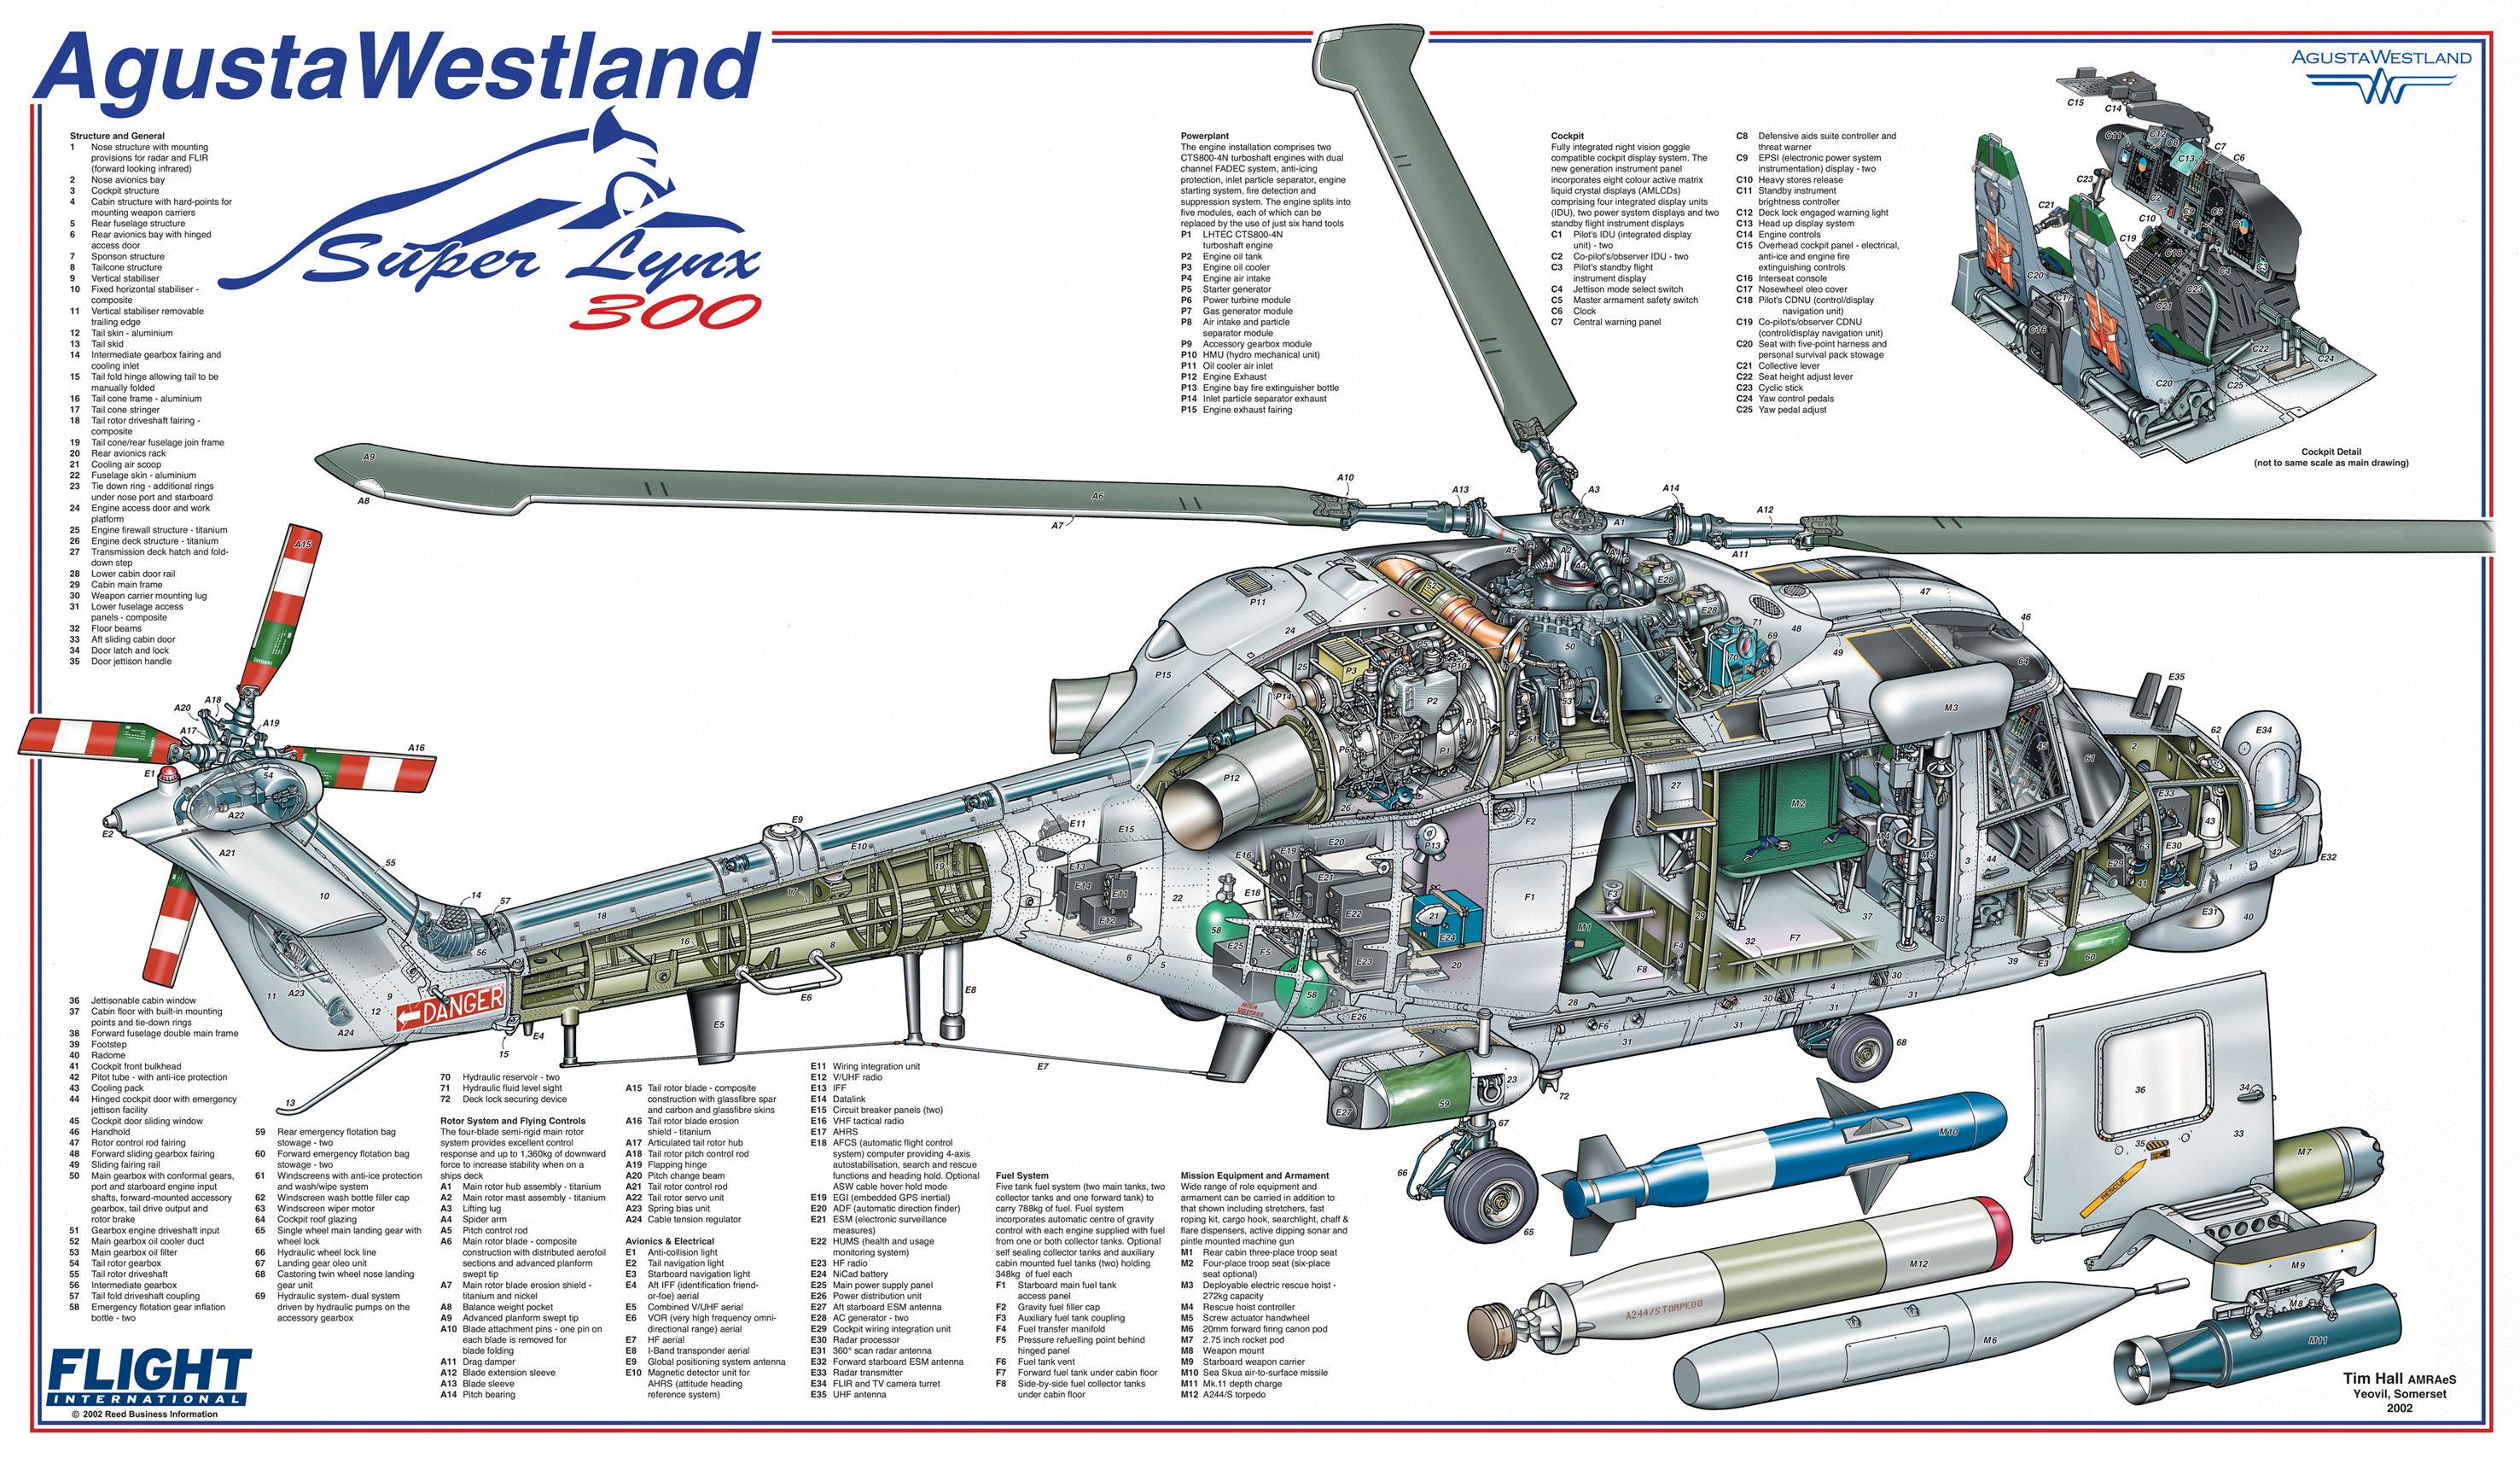 lynx helicopter engine with Showthread on Fluorine Kprawl P1 in addition Ec135p3 calstar moreover H 1yz kaman likewise Printthread together with P275359.